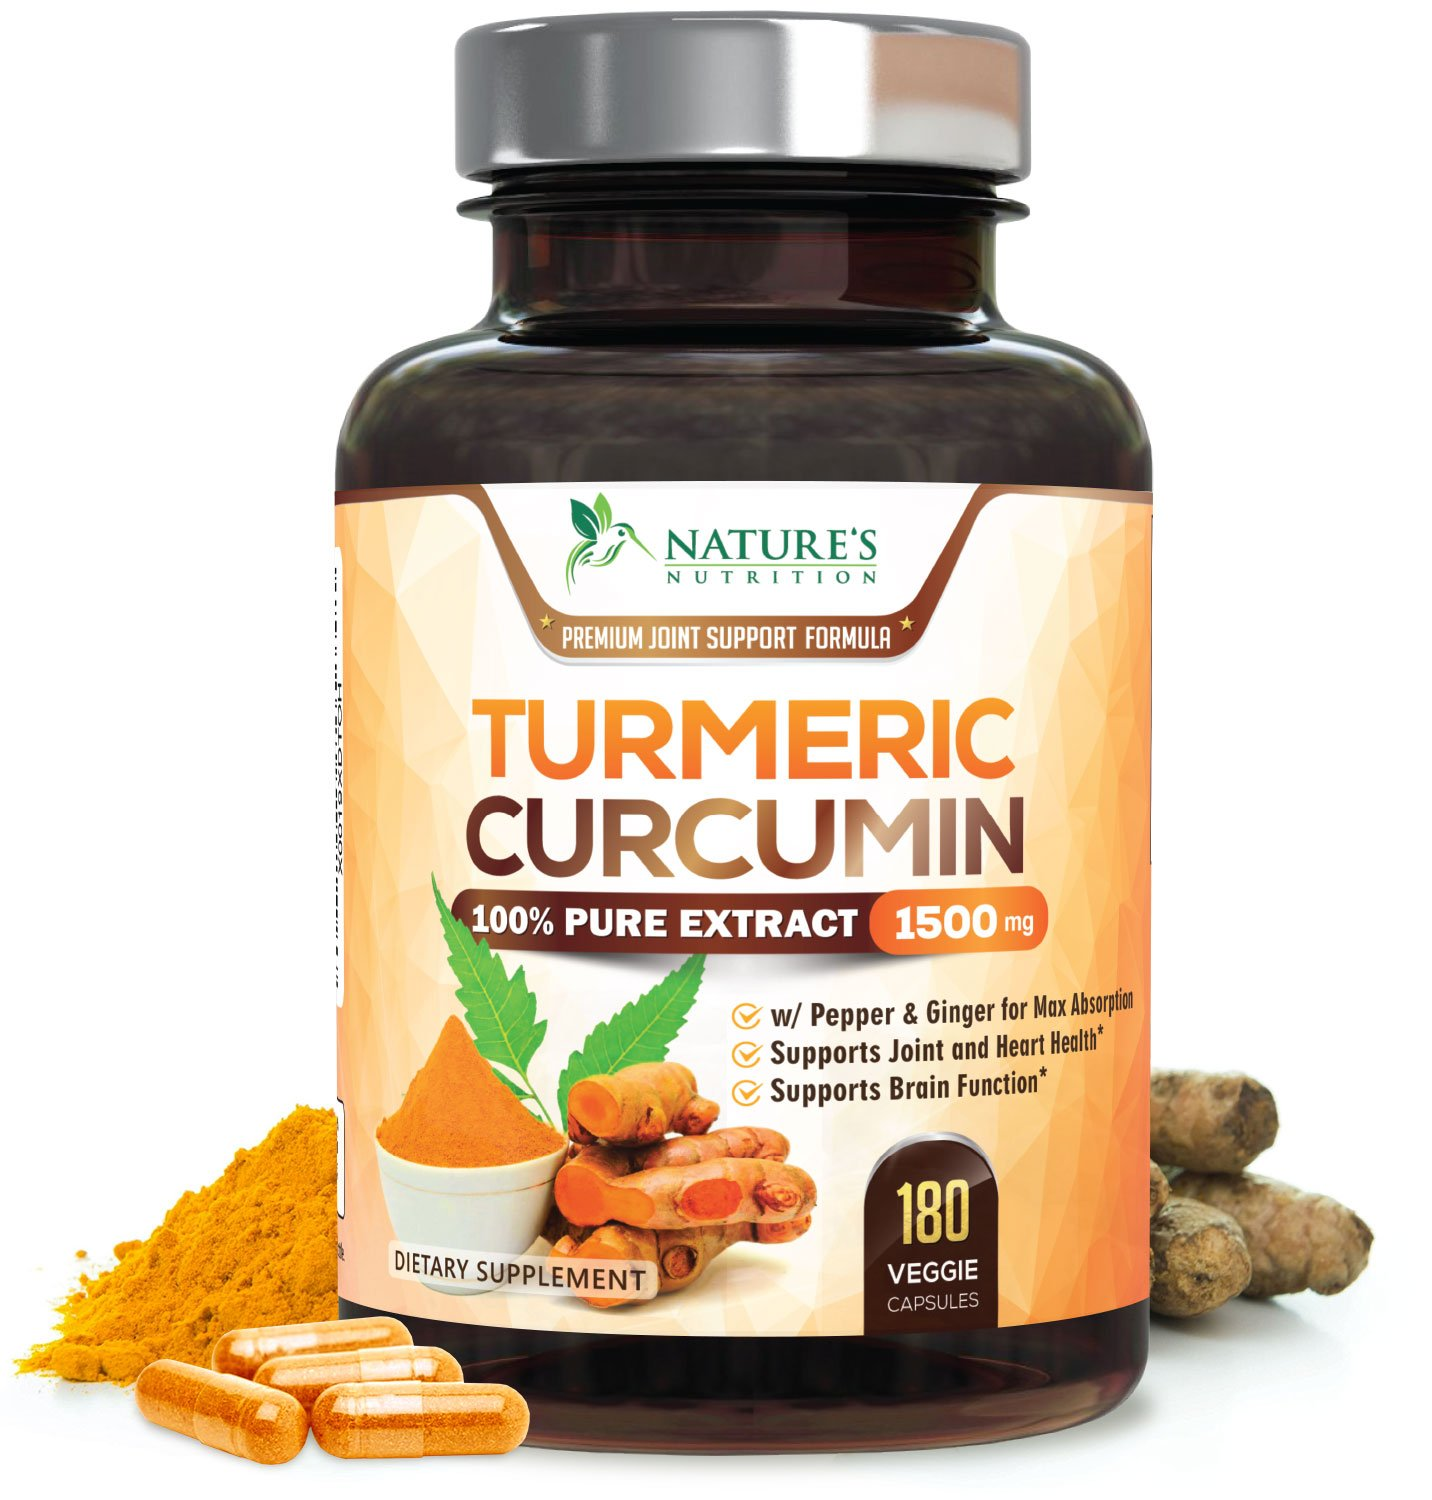 Turmeric Curcumin 100% Pure Extract 95% Curcuminoids with Black Pepper & Ginger for Best Absorption, Anti-Inflammatory Joint Relief, Turmeric Supplement Pills, by Nature's Nutrition - 180 Capsules